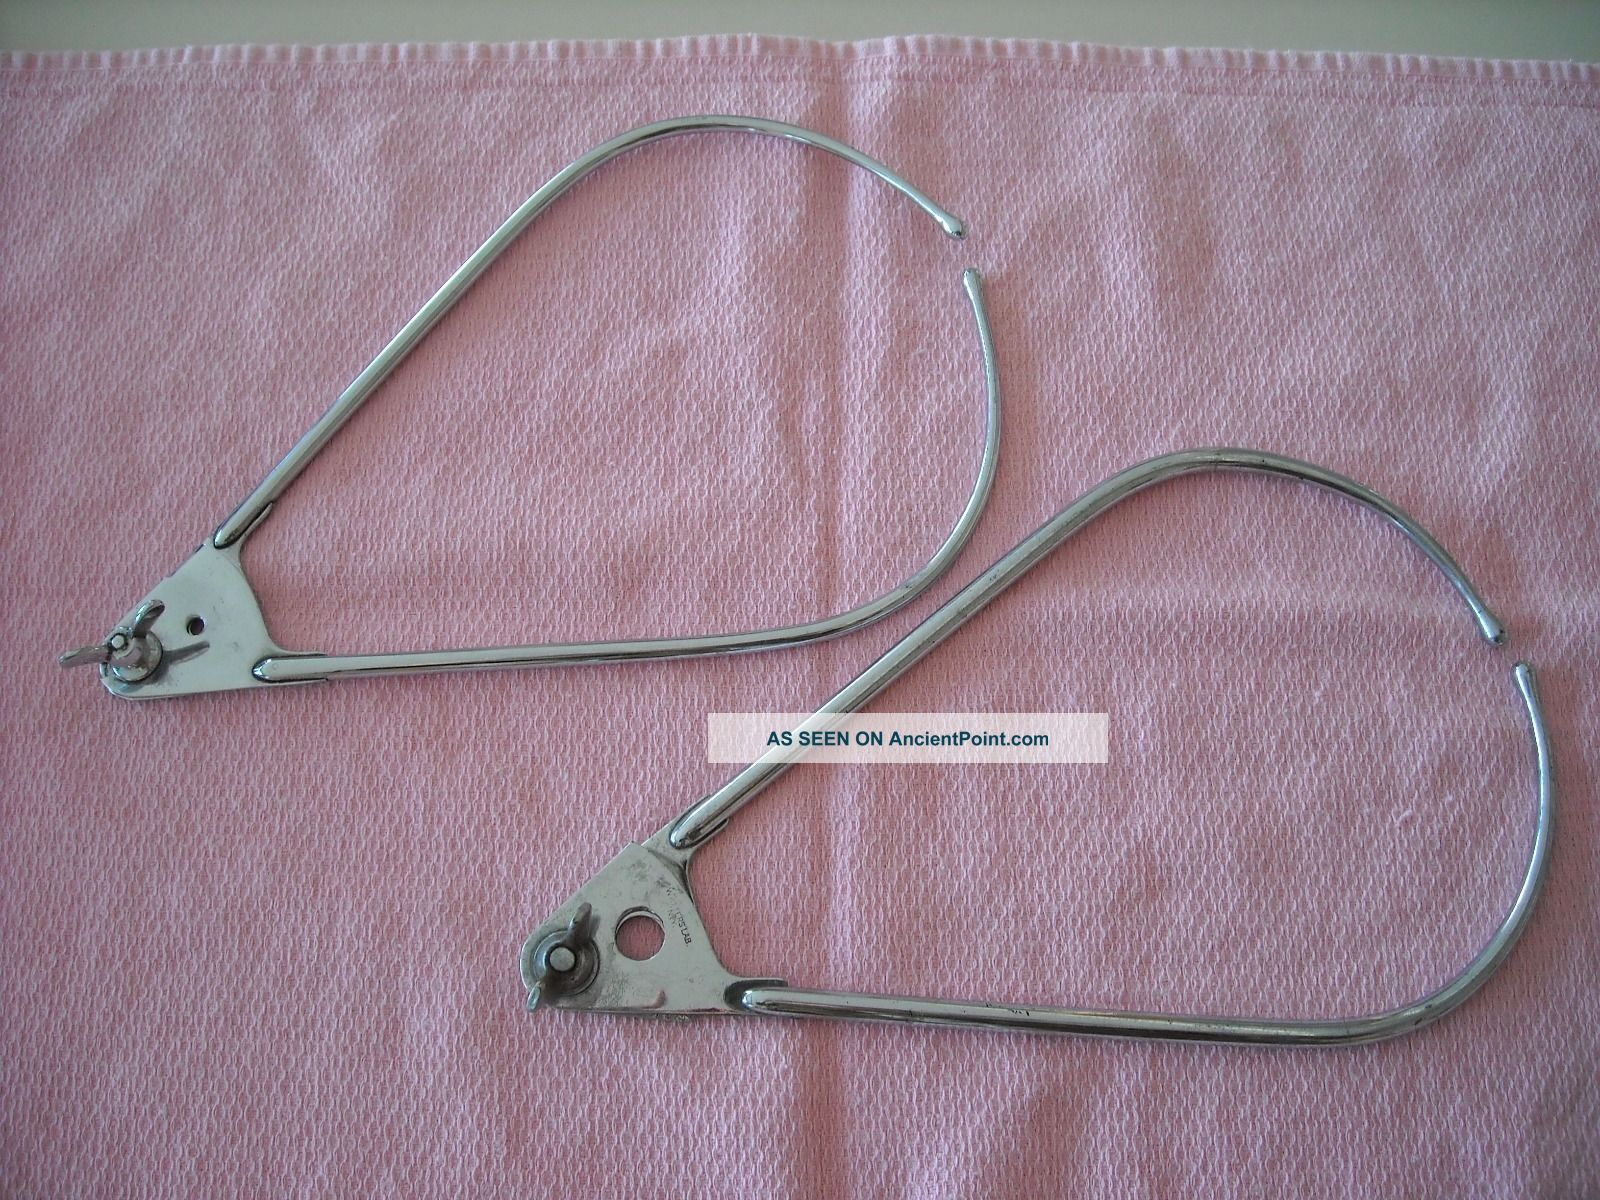 2 Calipers 1940s Medical Instrument Baby Head Measurement Other Medical Antiques photo